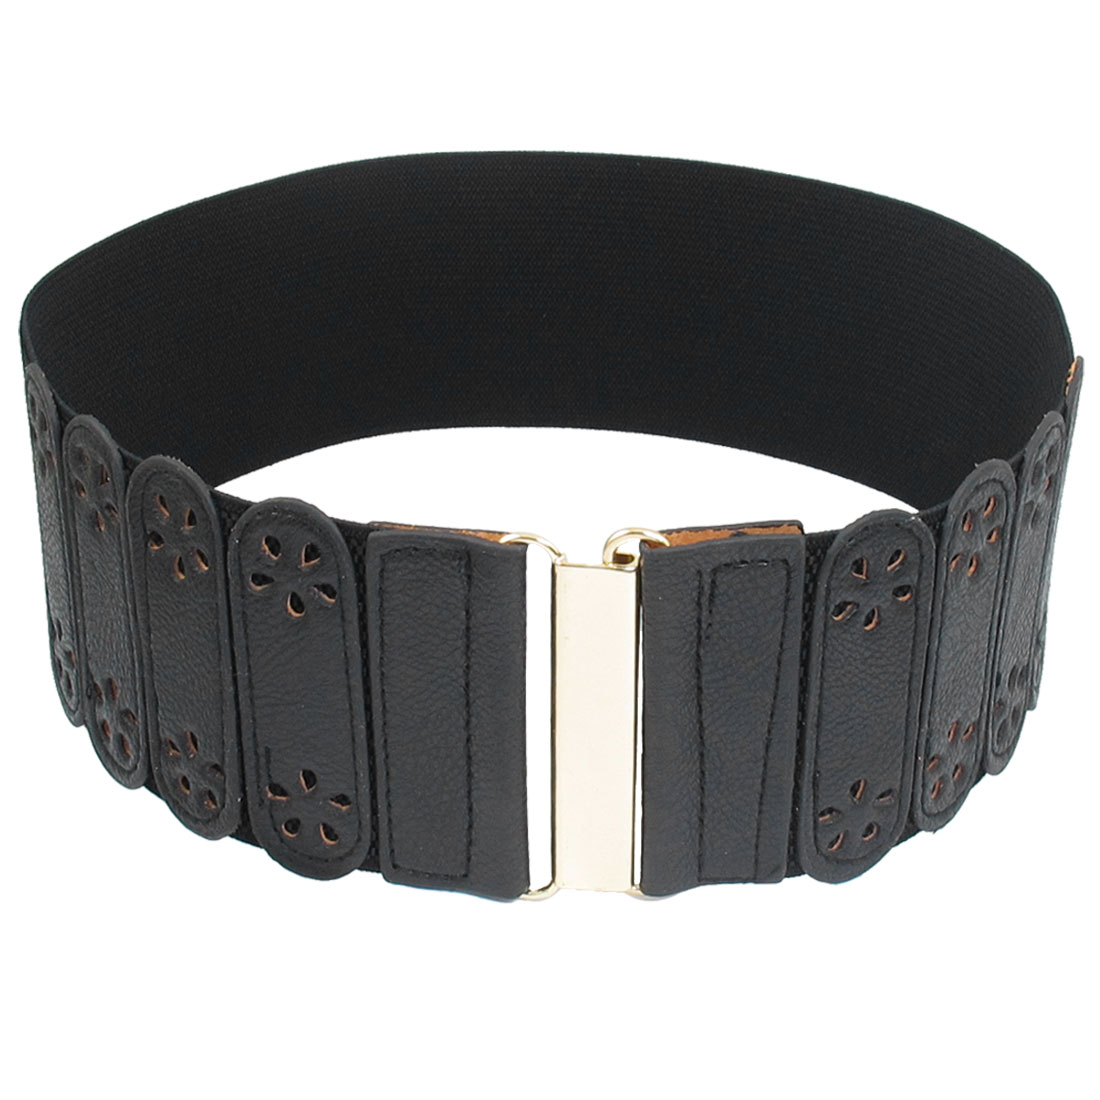 Ladies Hollow Flower Decor Interlocking Closure Stretchy Band Waist Belt Black